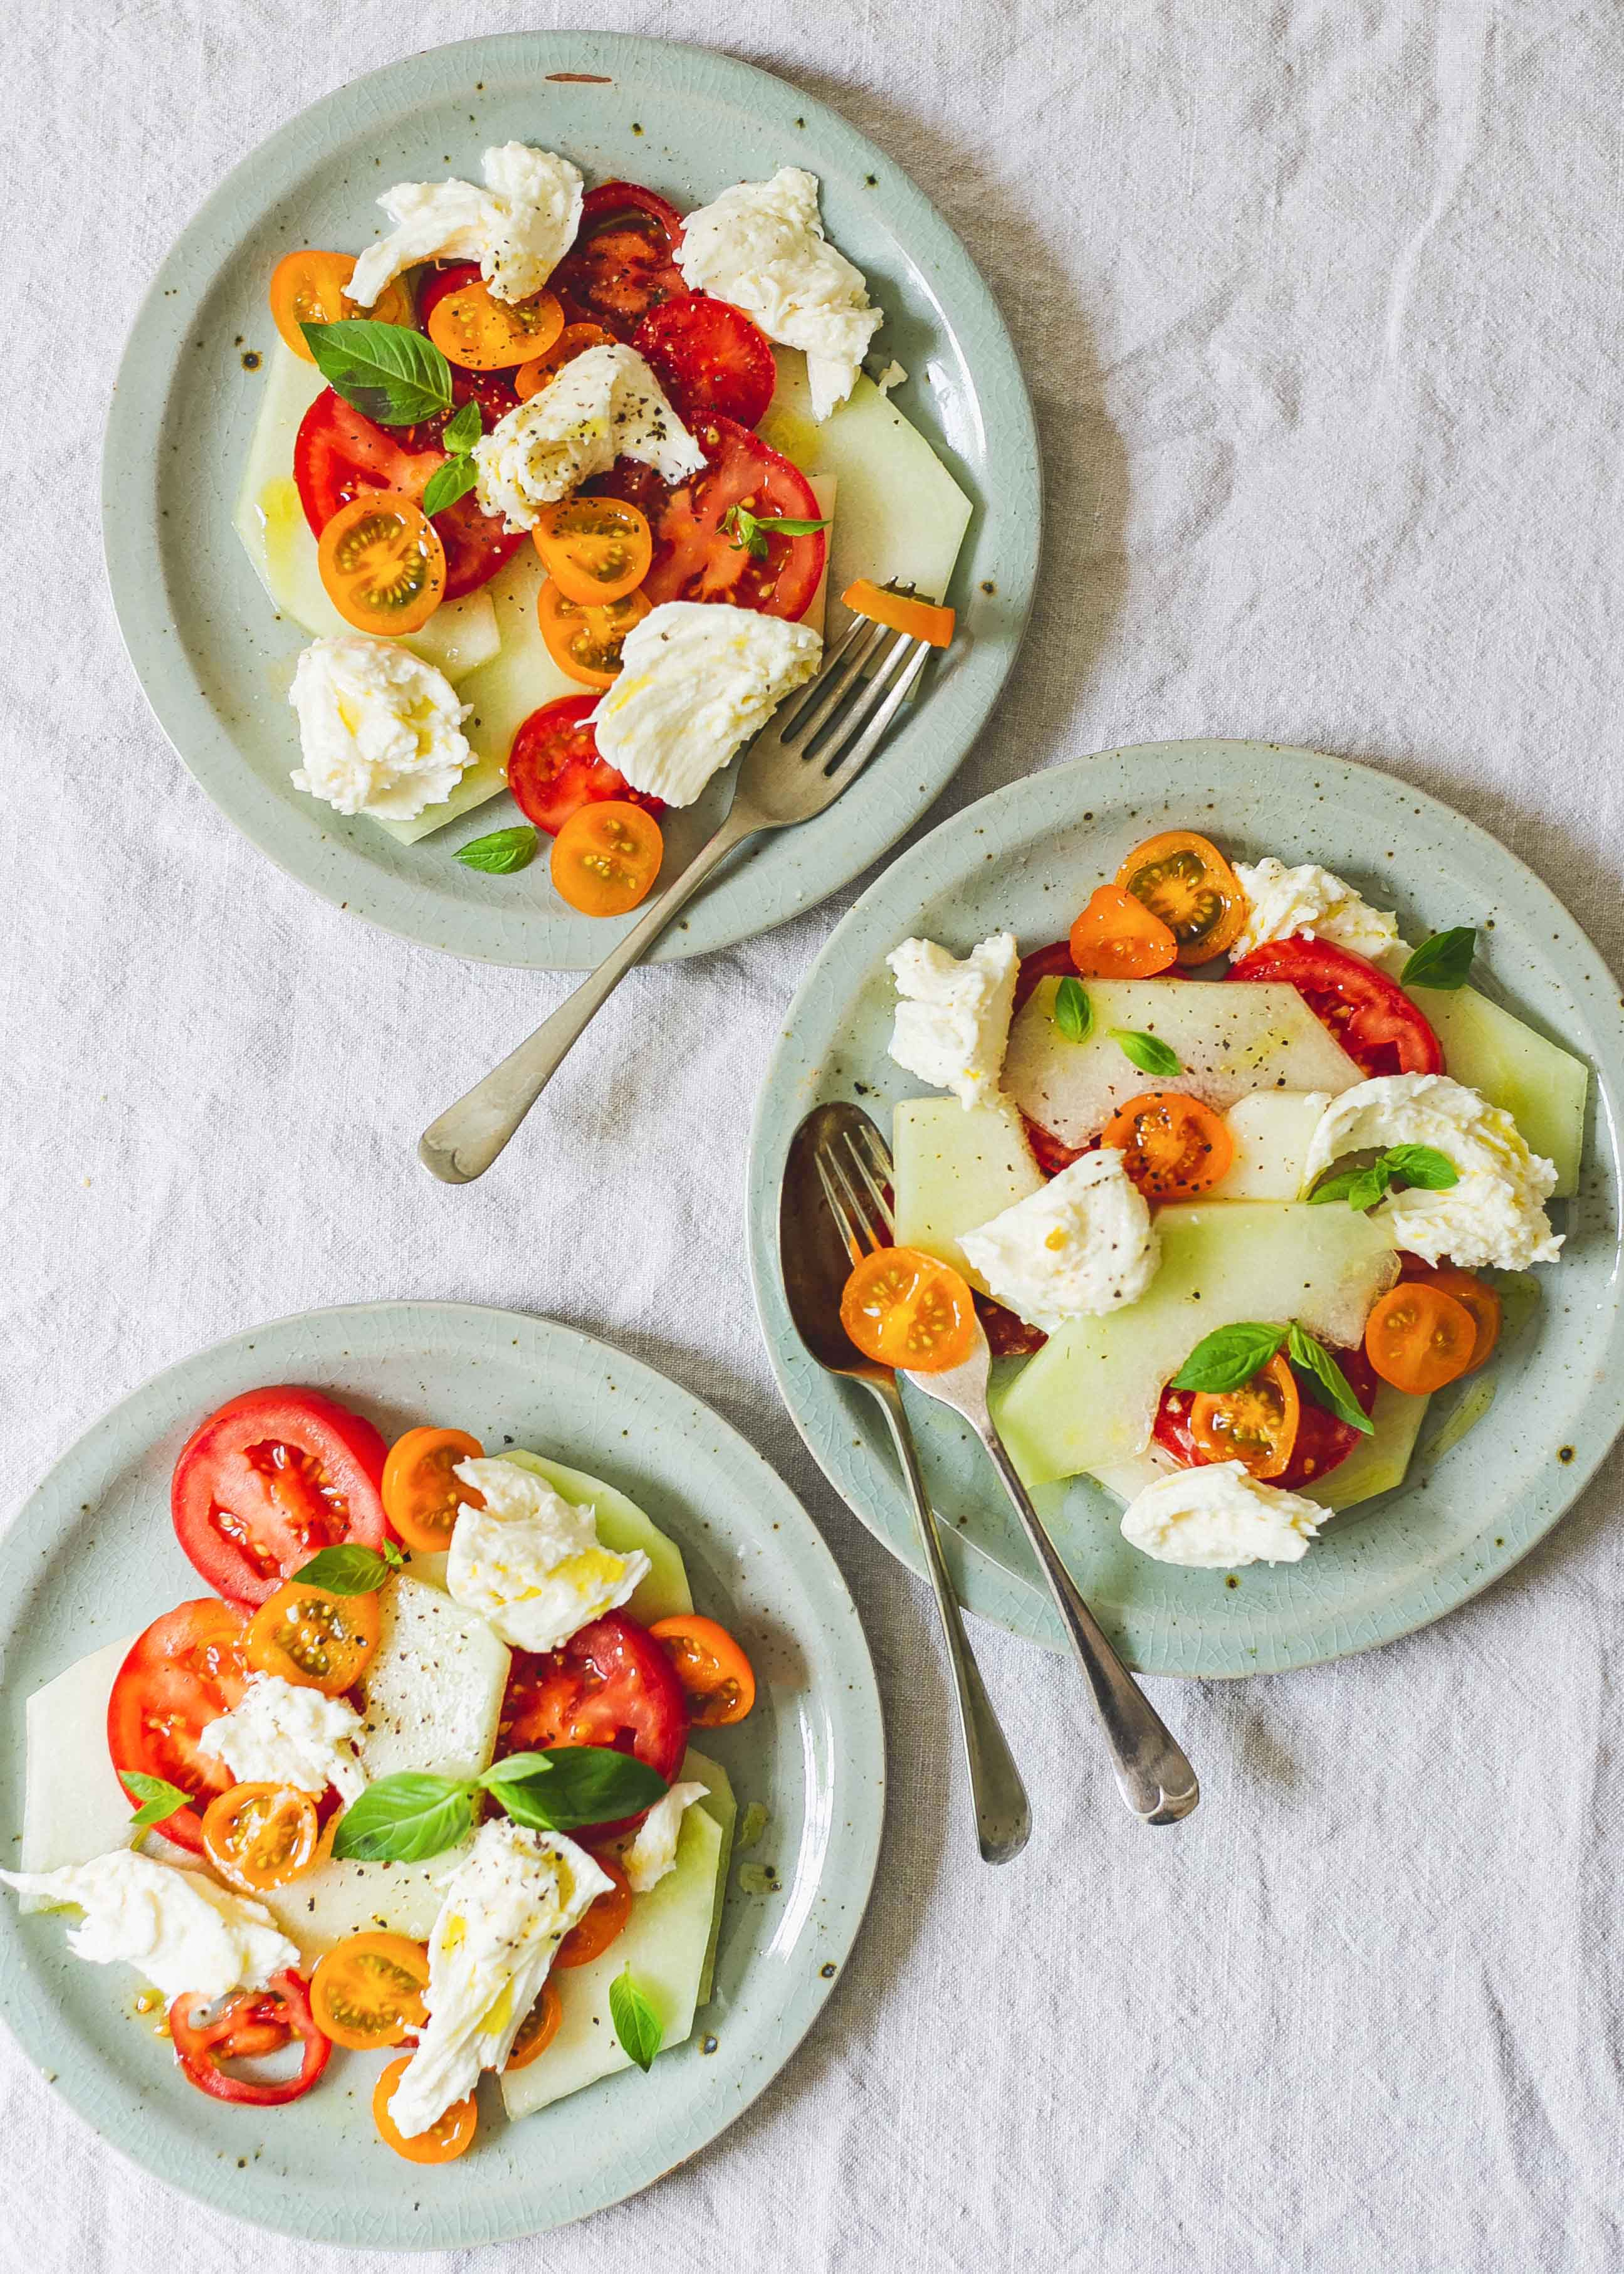 Tomato and melon salad low FODMAP